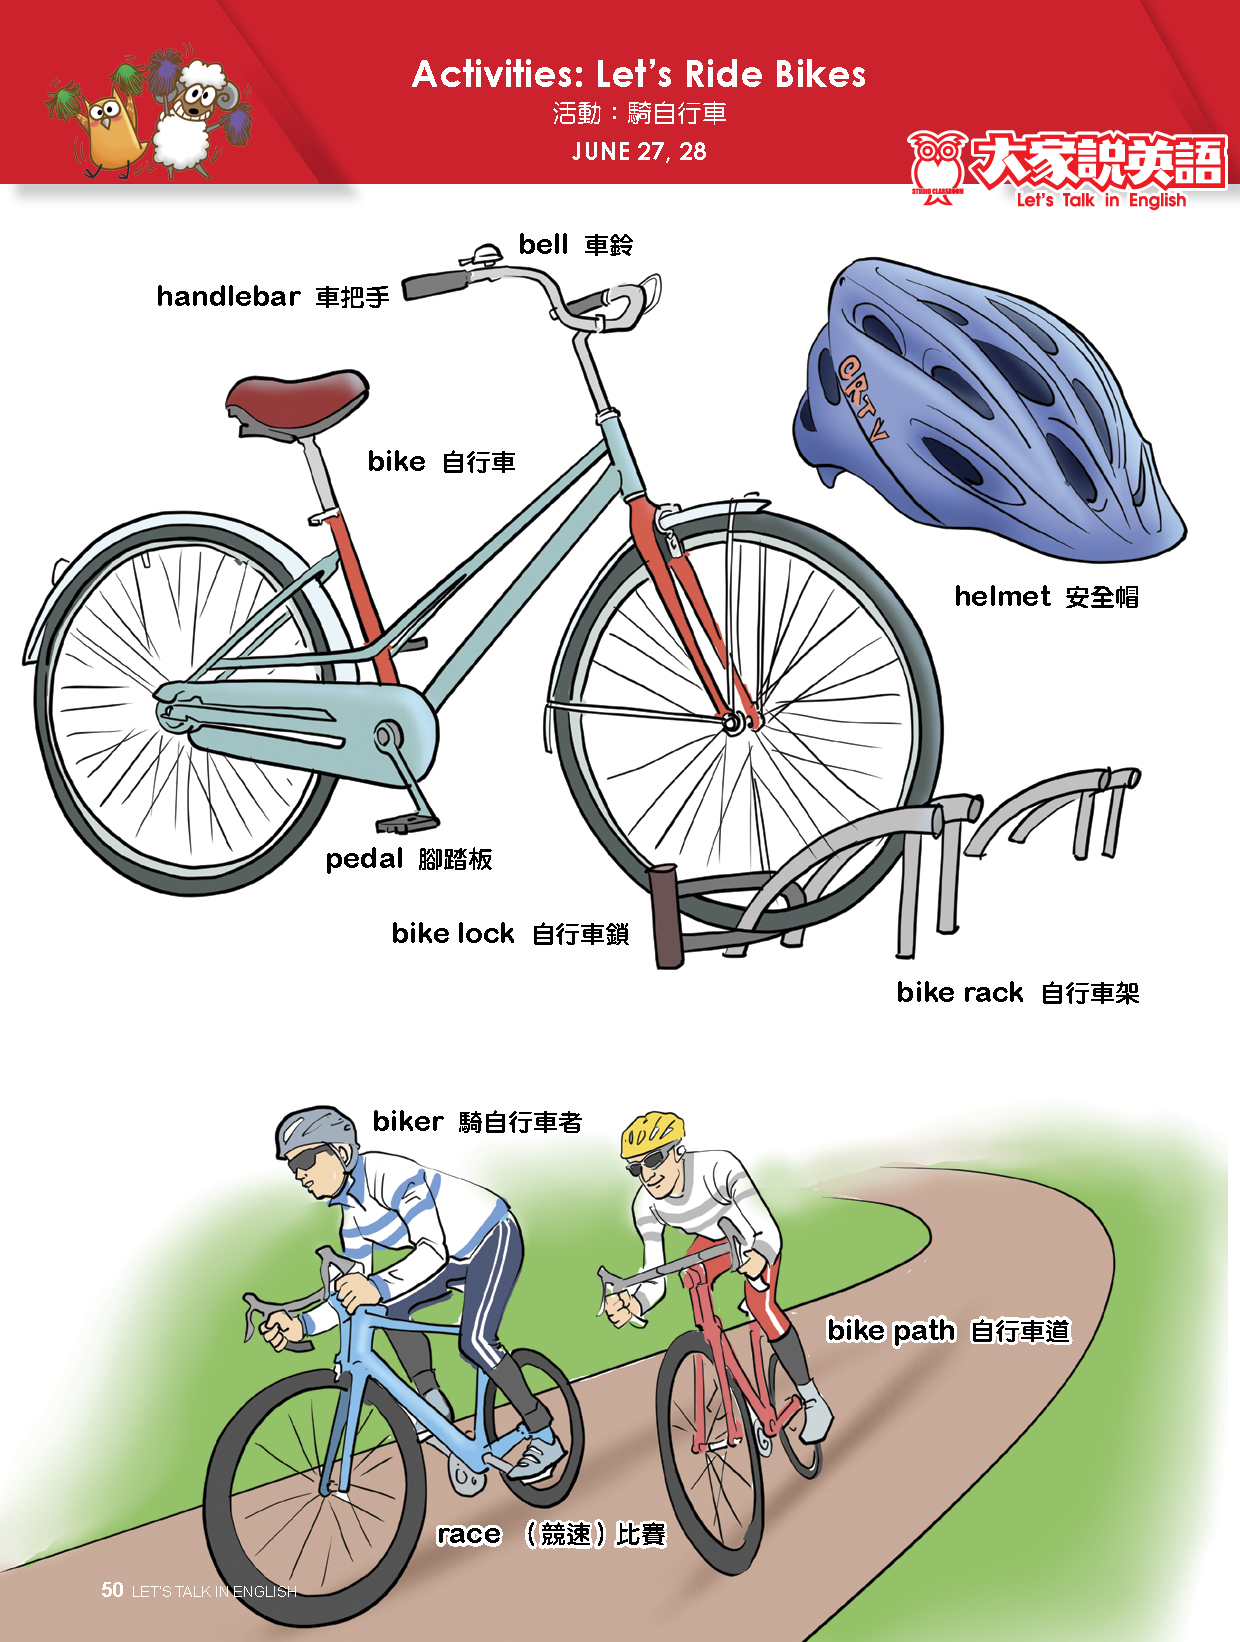 【Visual English】Activities: Let's Ride Bikes